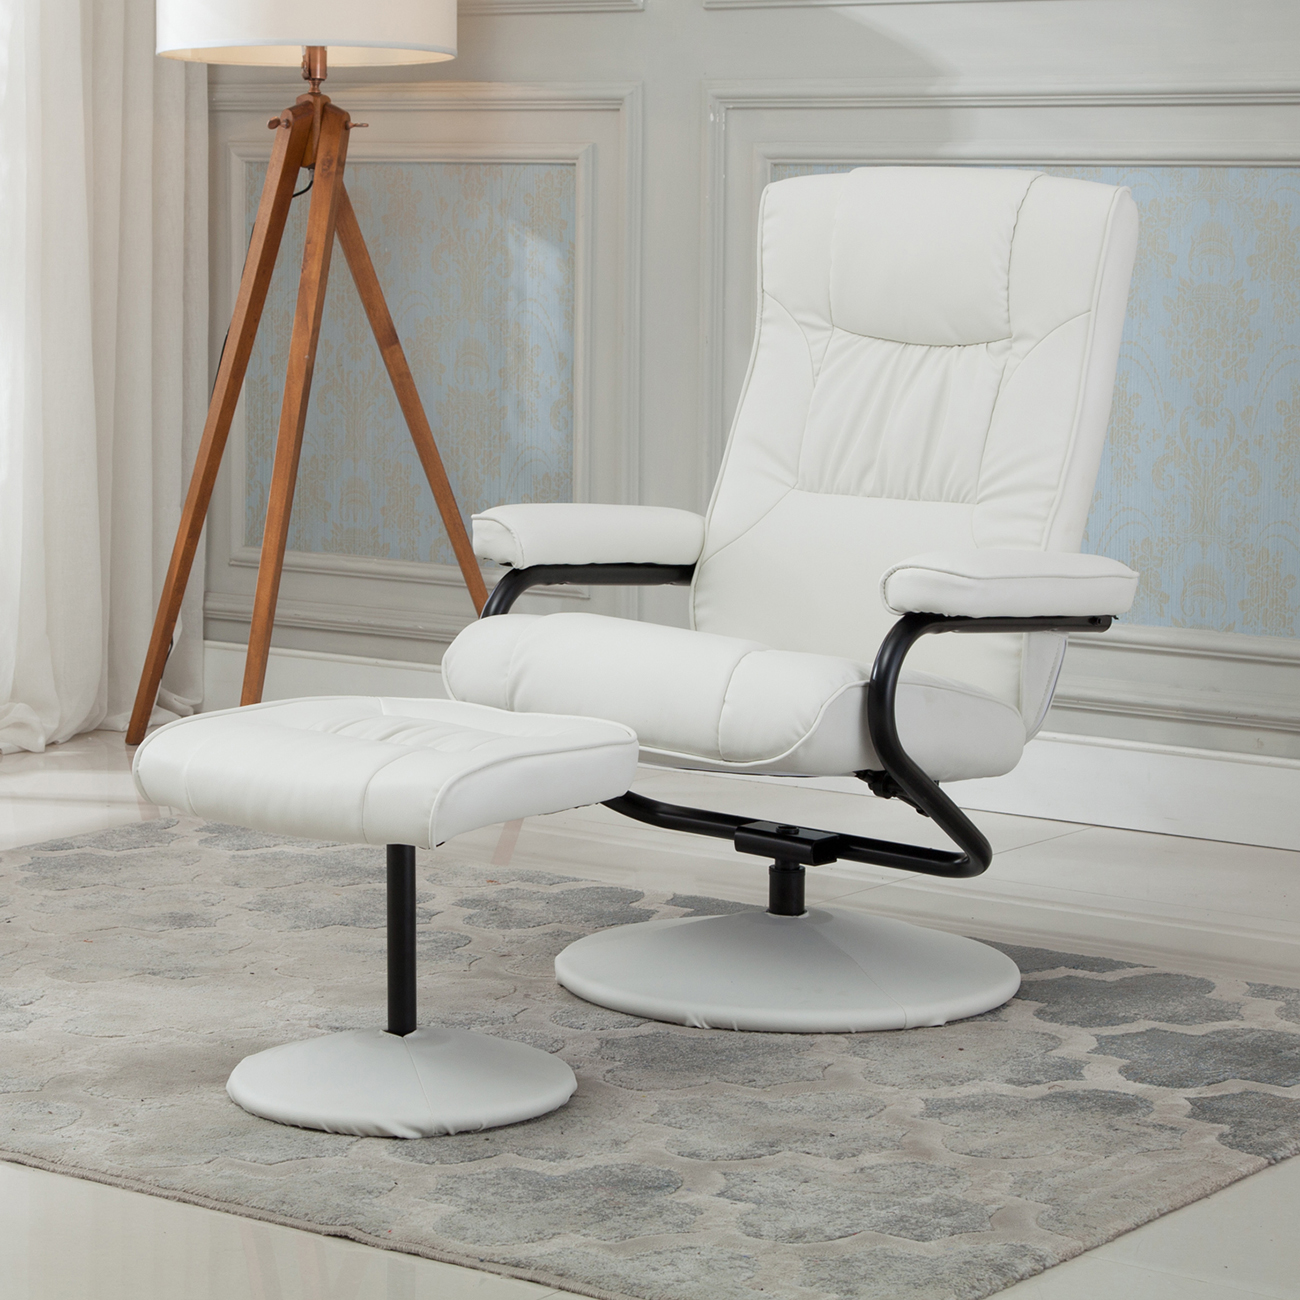 Belleze Premium Faux Leather Recliner & Ottoman Set, Reclining Chair Home Living Room, White by Belleze